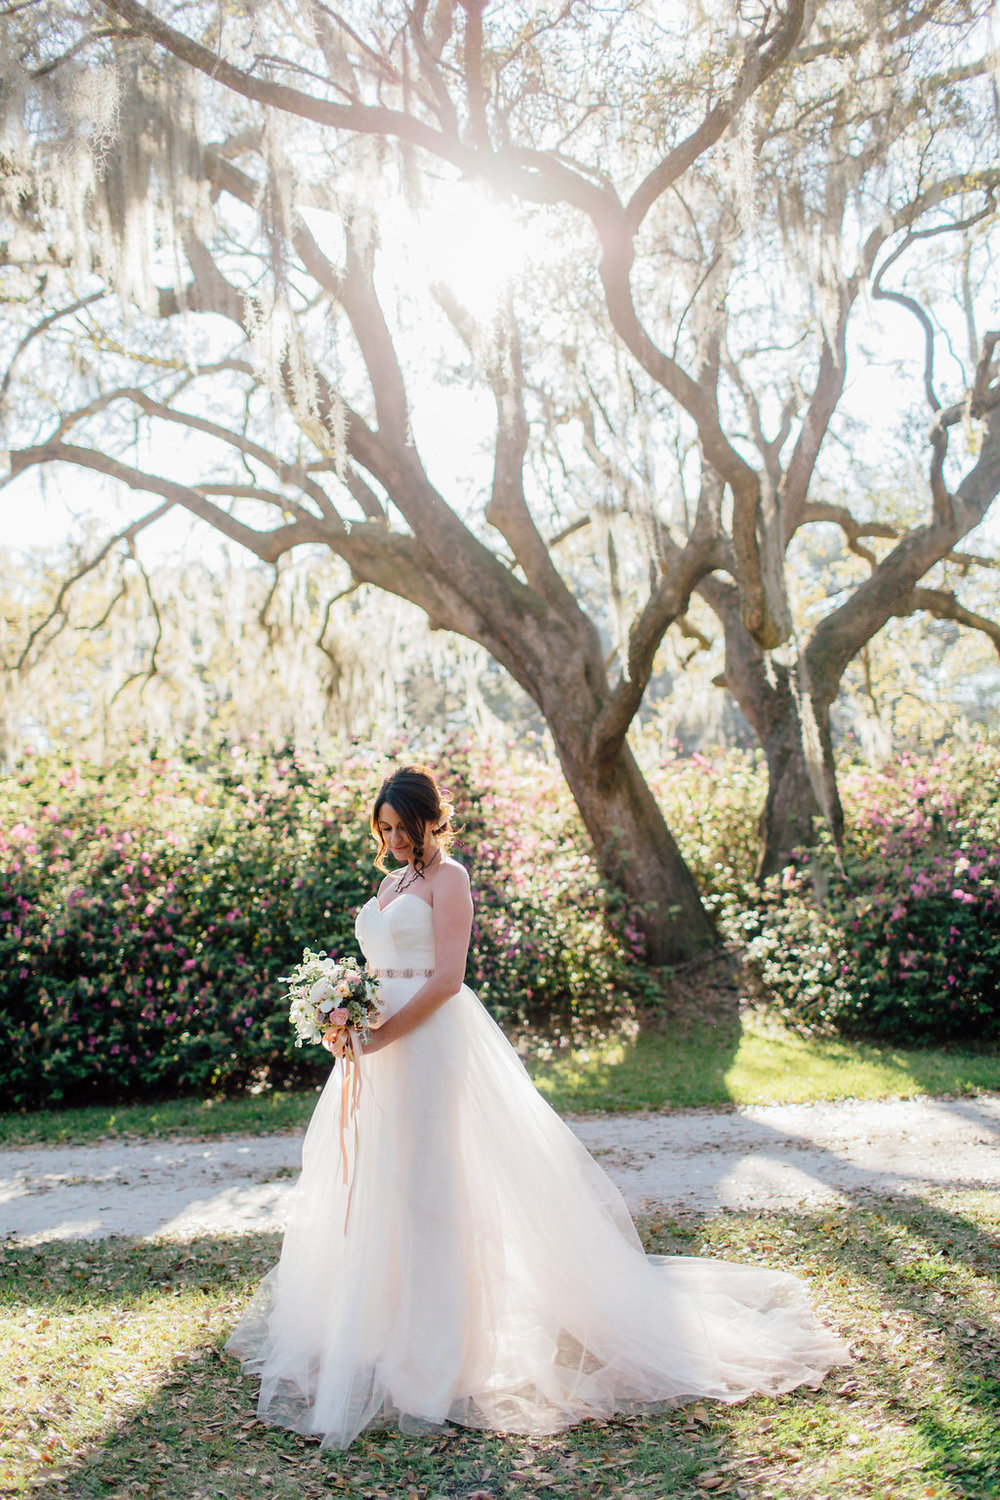 hannah-lane-photography-southern-weddings-blog-charleson-wedding-charleston-styled-shoot-ivory-and-beau-bridal-boutique-blush-by-hayley-paige-candi-blush-tulle-wedding-dress-savannah-bridal-boutique-savannah-wedding-dresses-rosegold-sash-33.jpg